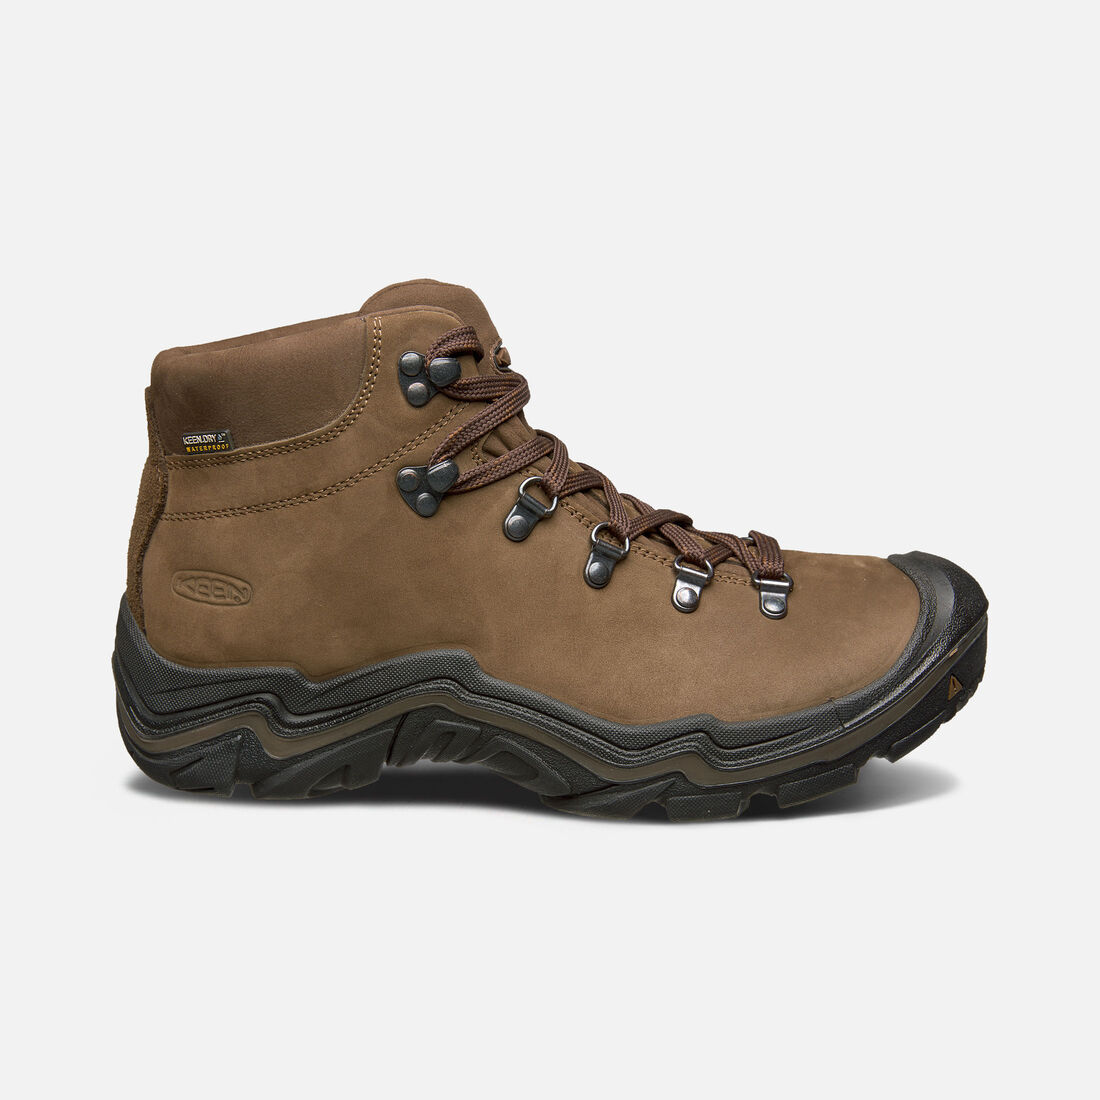 2f70535a06 Men's Feldberg Waterproof - Built for tough trails and all-day ...